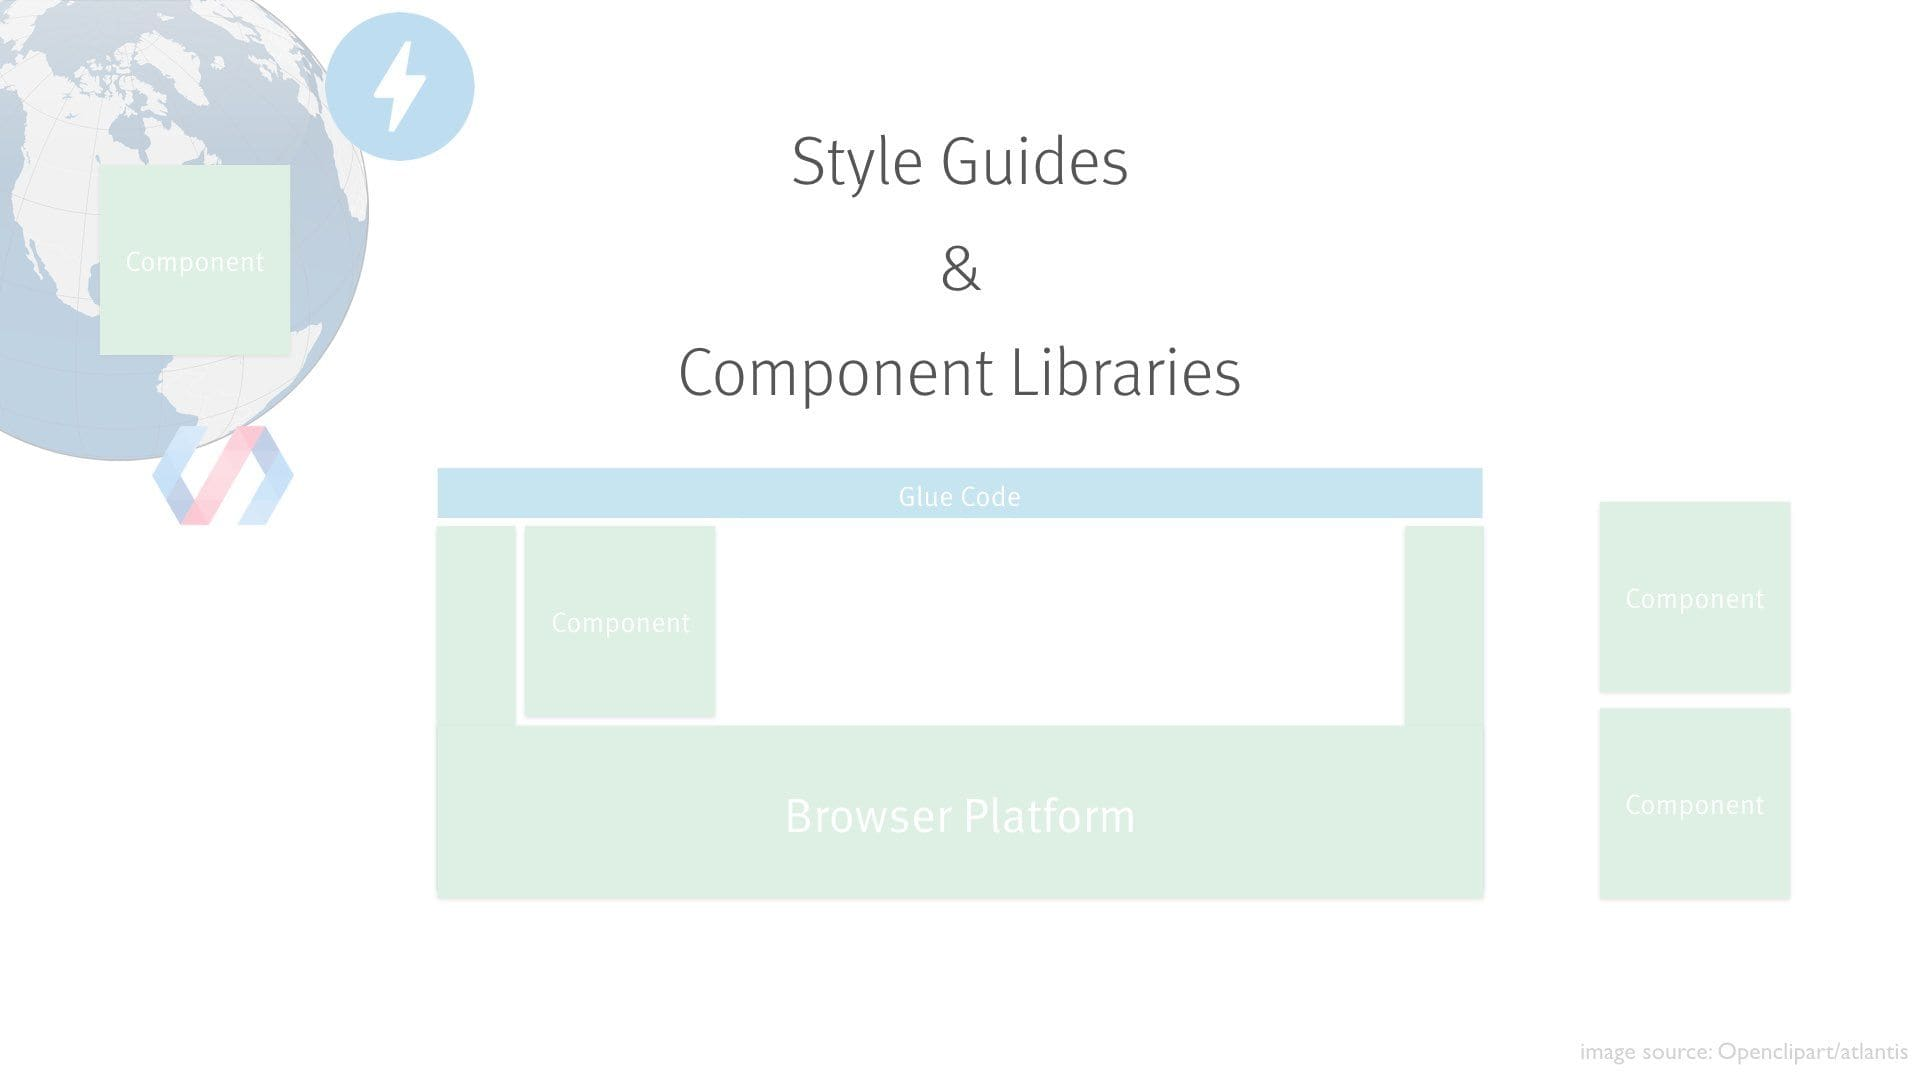 Style Guides & Component Libraries